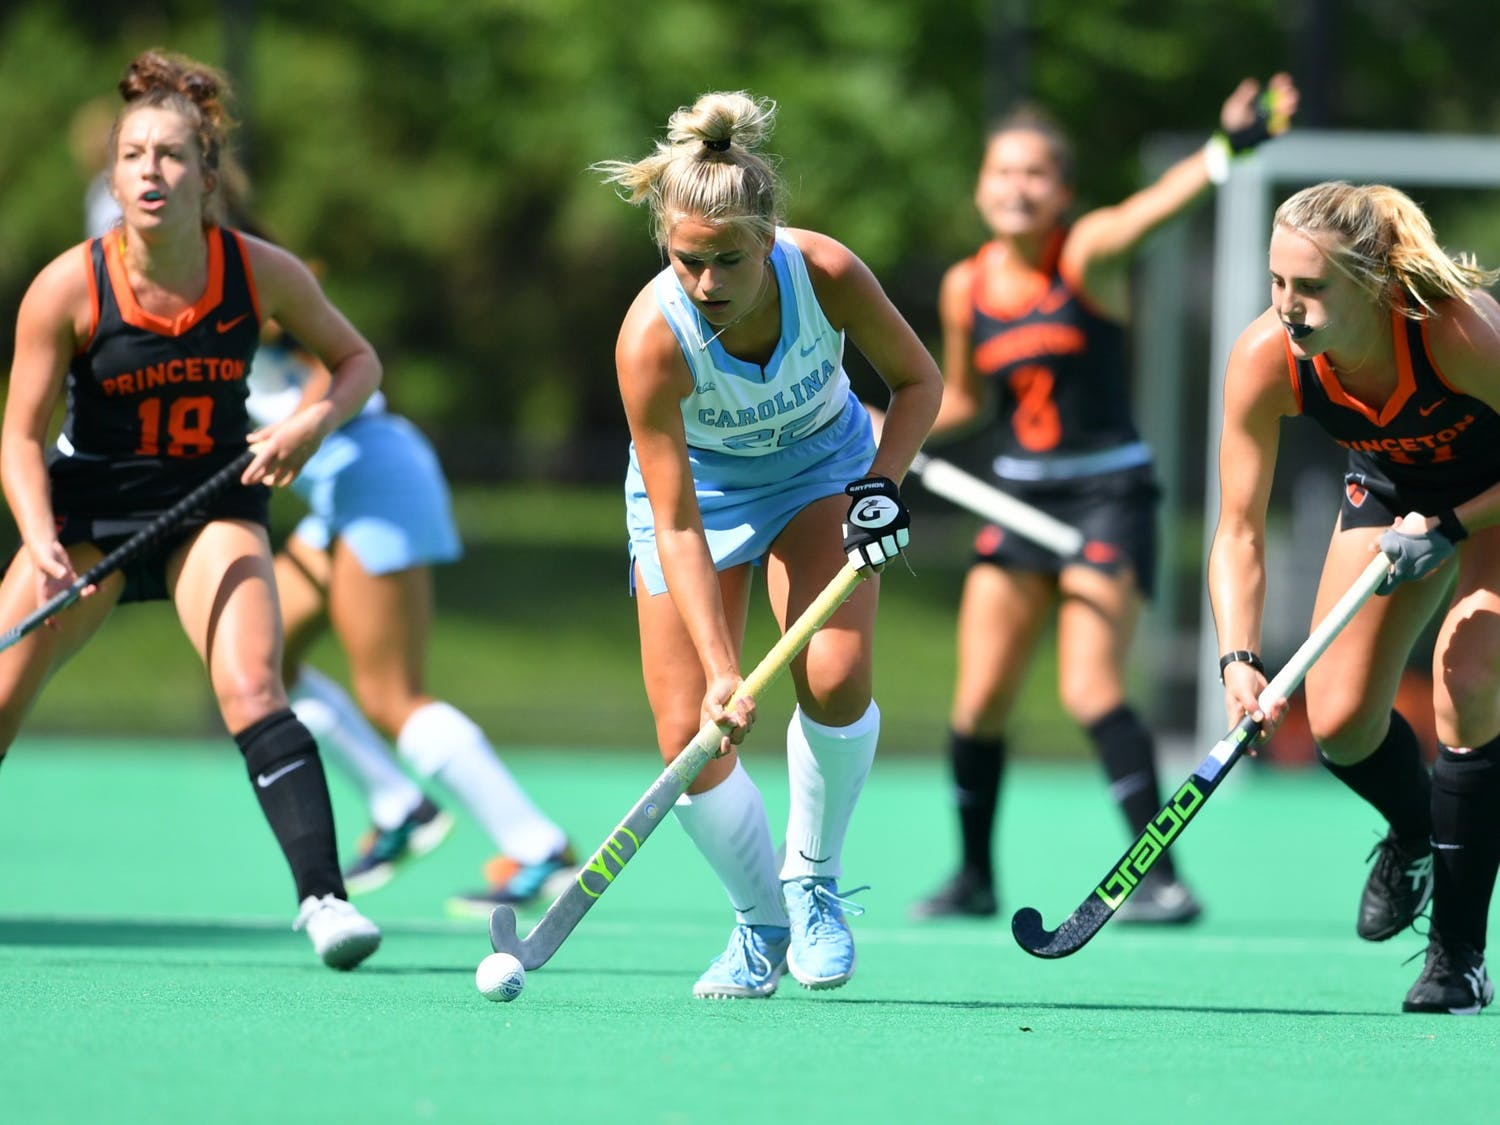 First-year midfielder Jasmina Smolenaars (22) goes for the ball in a field hockey game against Princeton on Sept. 5. Photo courtesy of Greg Carroccio/Princeton Athletics.